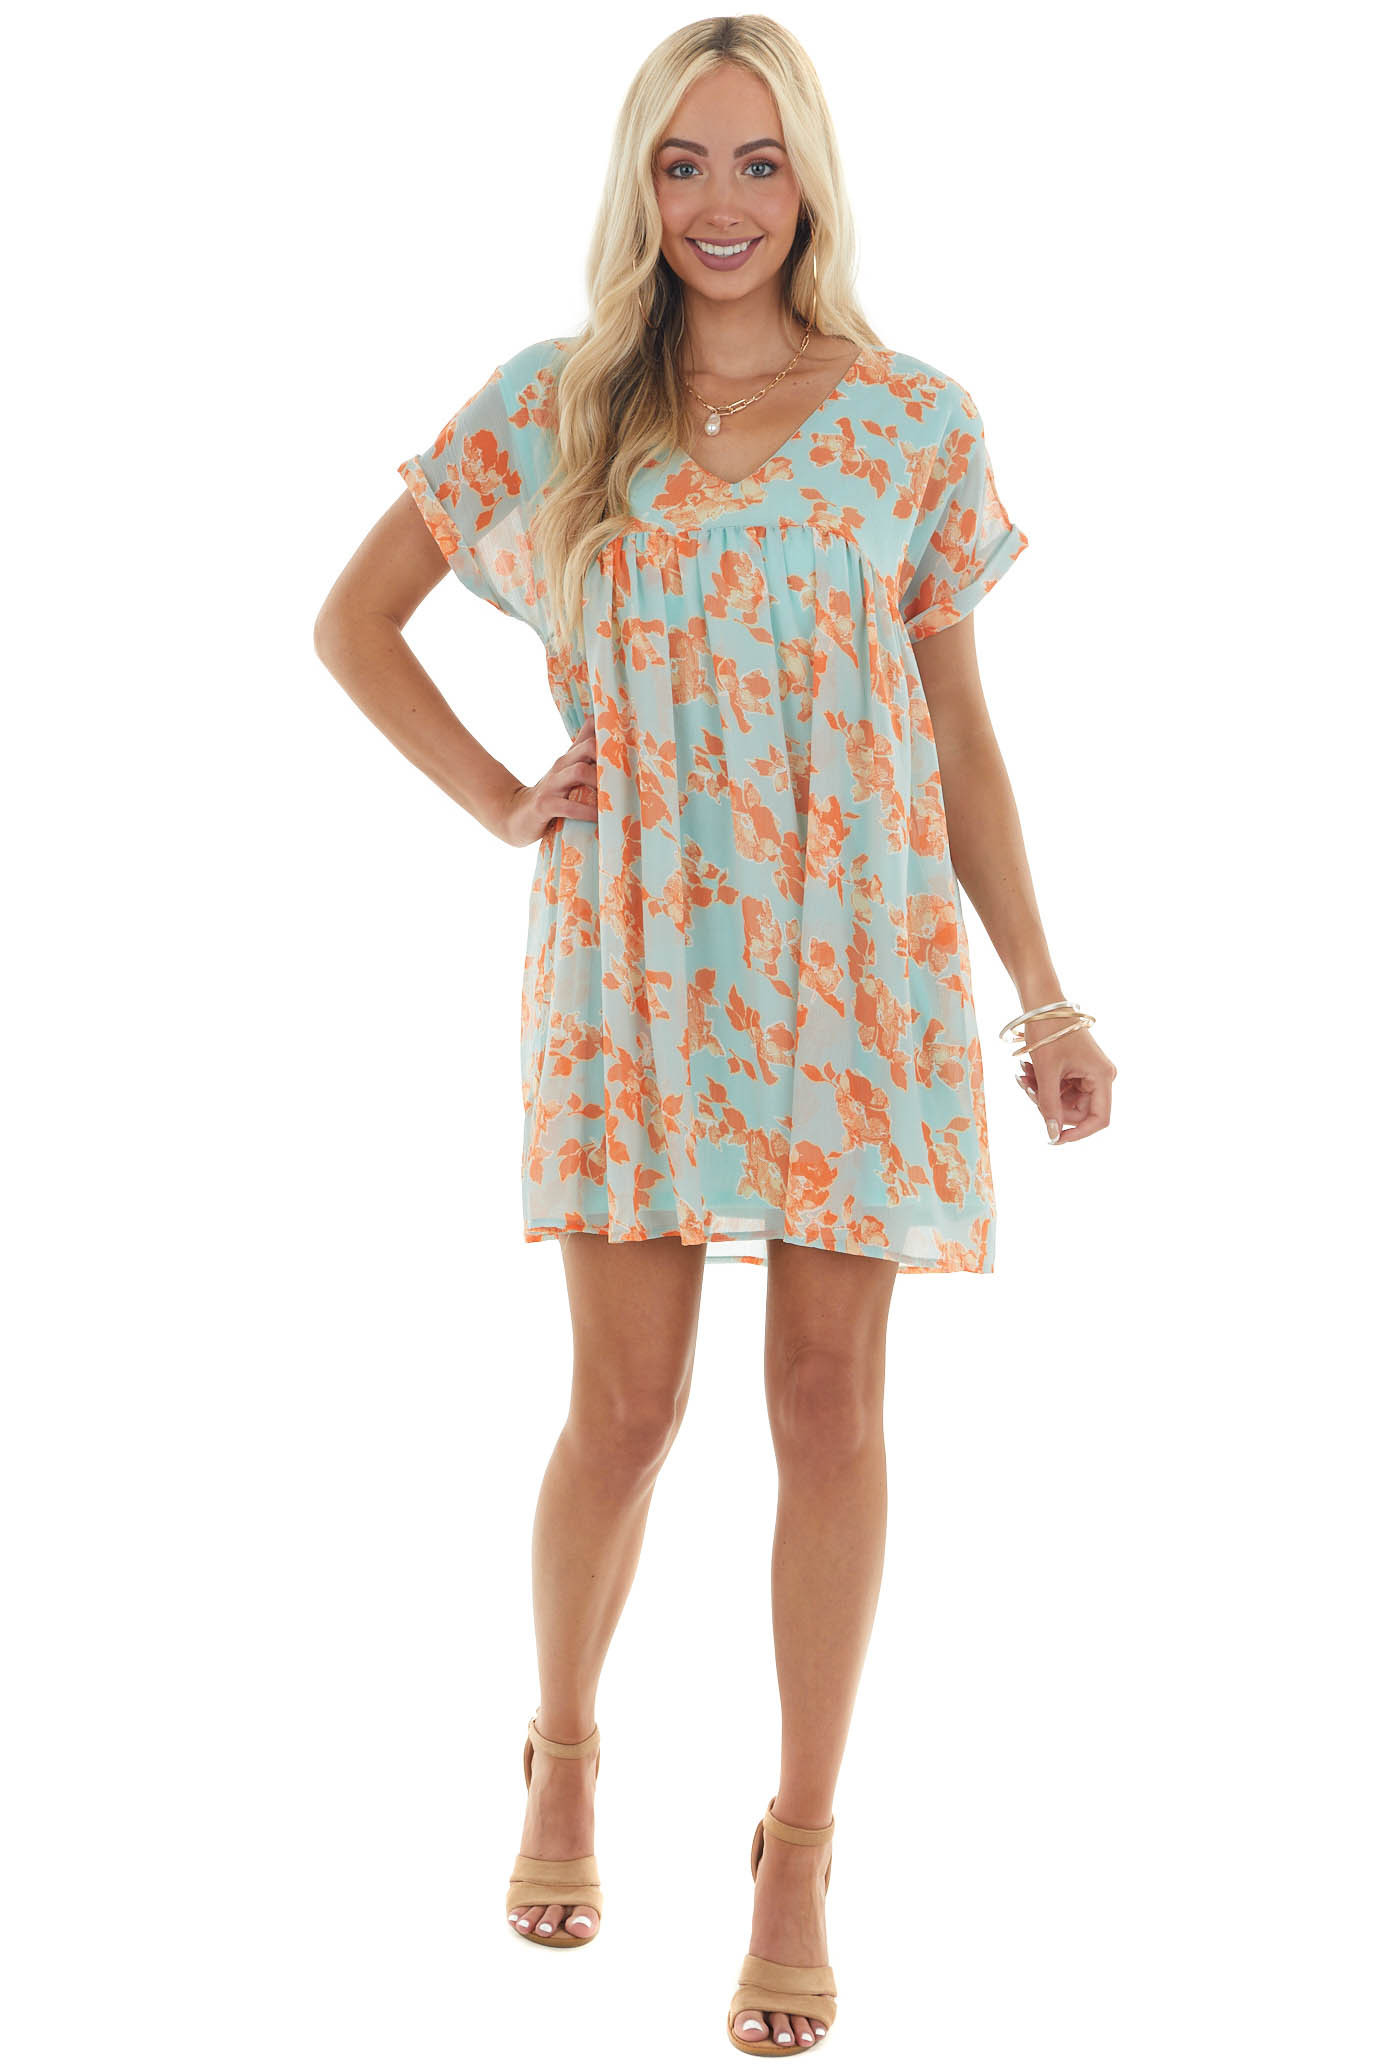 Aqua and Sunset Floral Babydoll Woven Dress